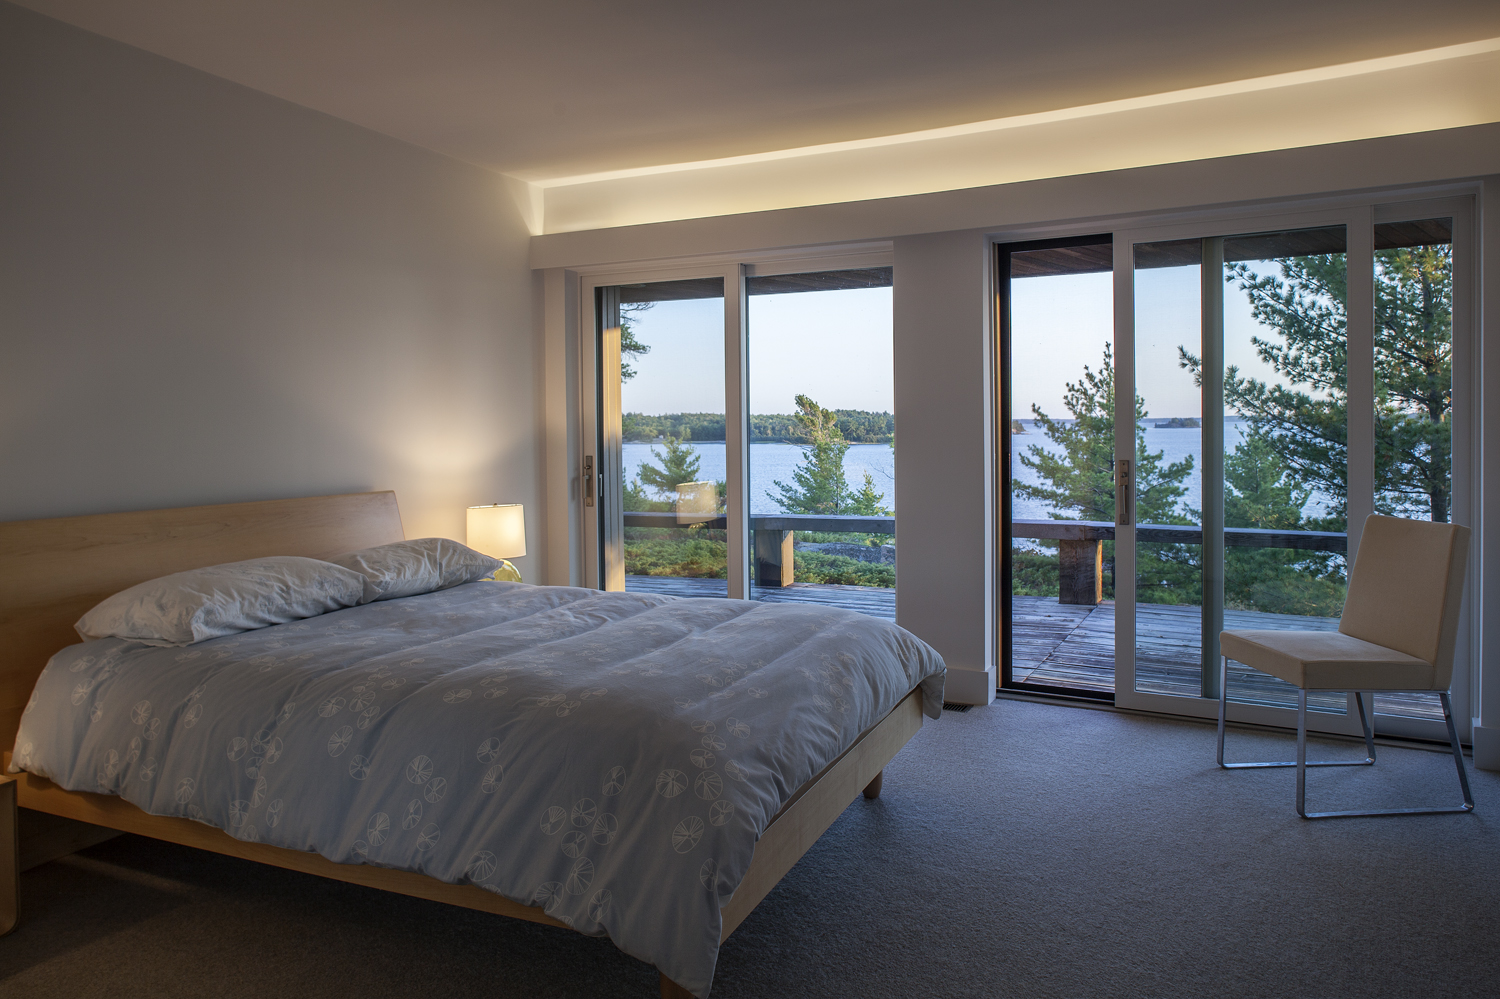 Bedroom with contemporary Maple wood bedframe, recessed light valance, and walkout to balcony with view of Georgian Bay